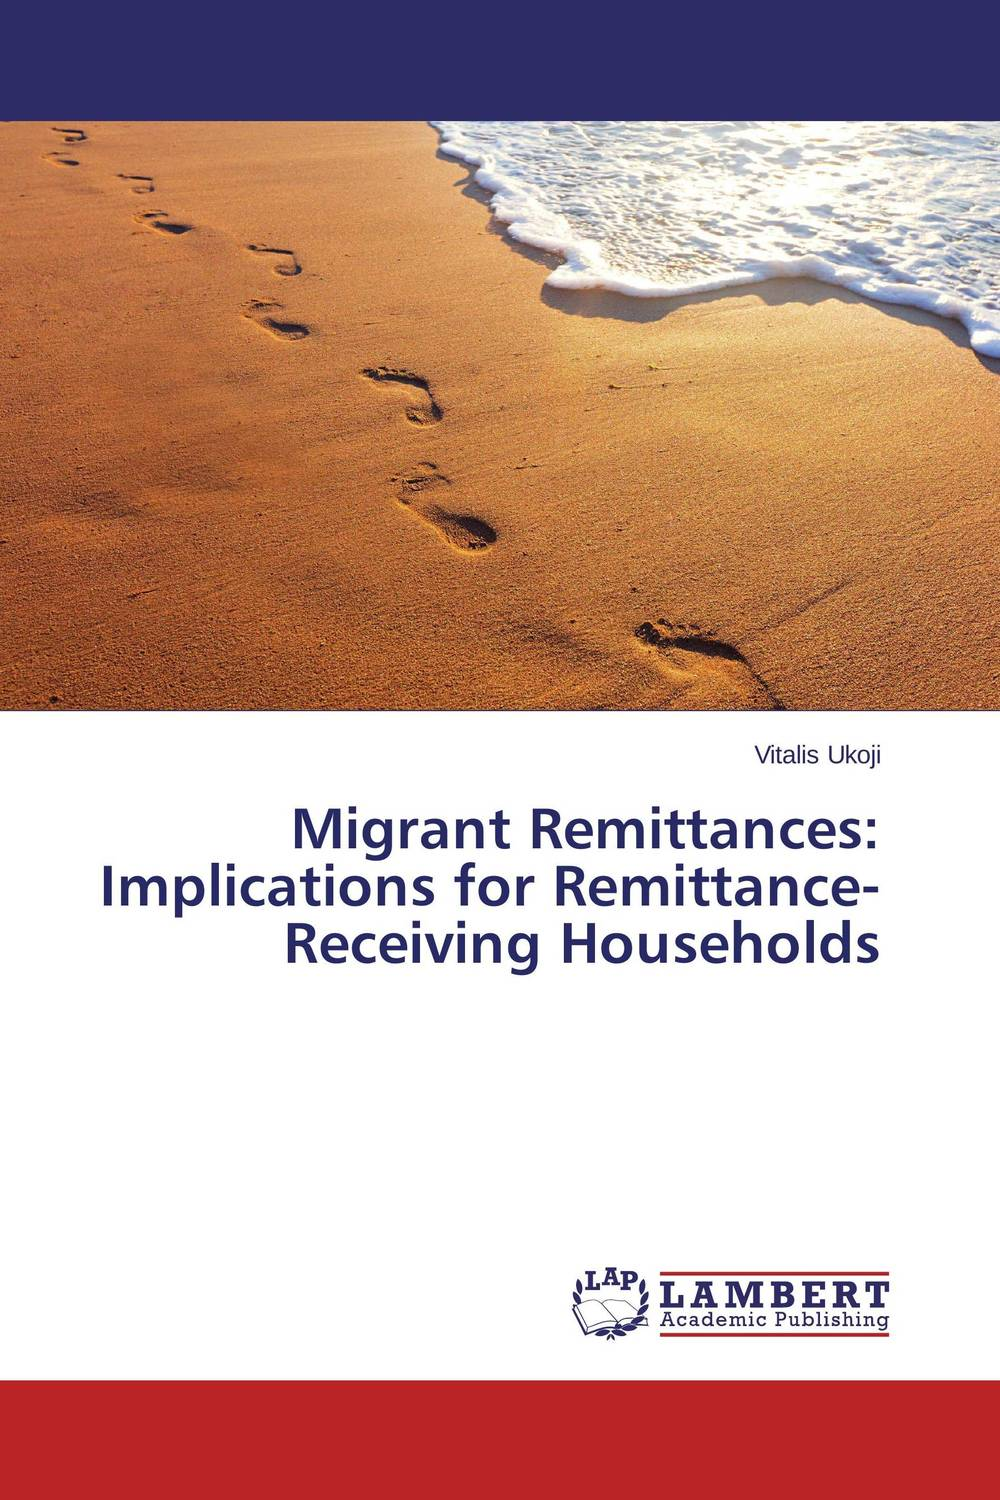 Migrant Remittances: Implications for Remittance-Receiving Households